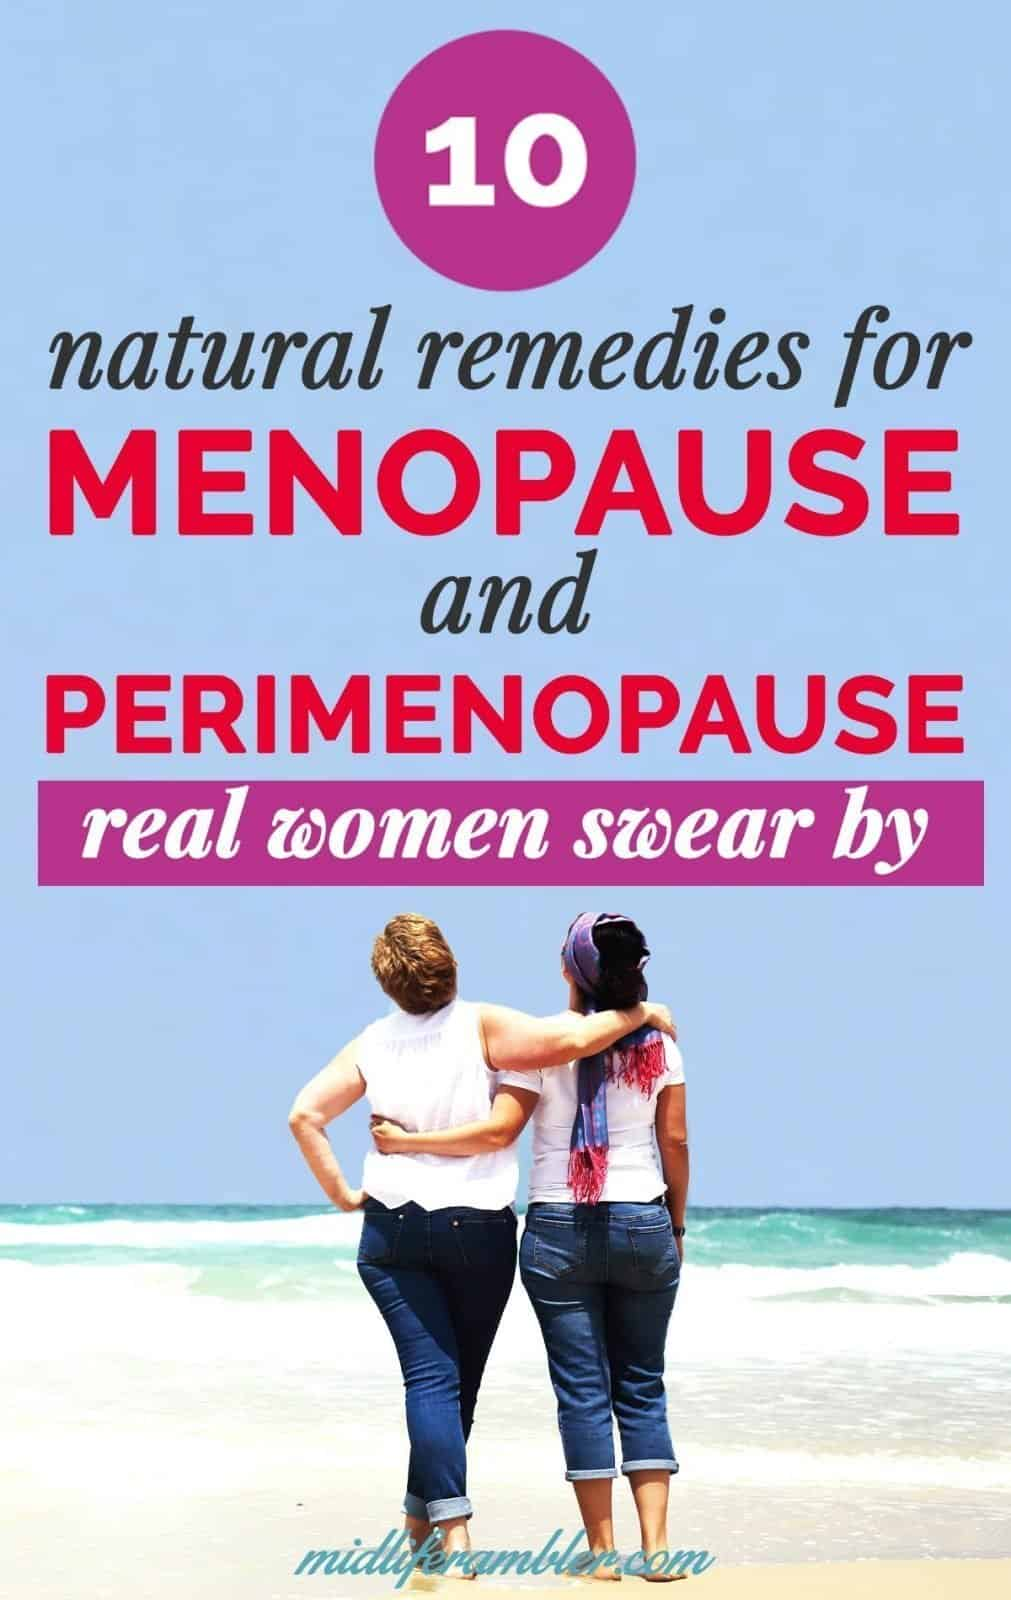 10 Natural Remedies for Menopause Symptoms that Really Work According to Real Women 20